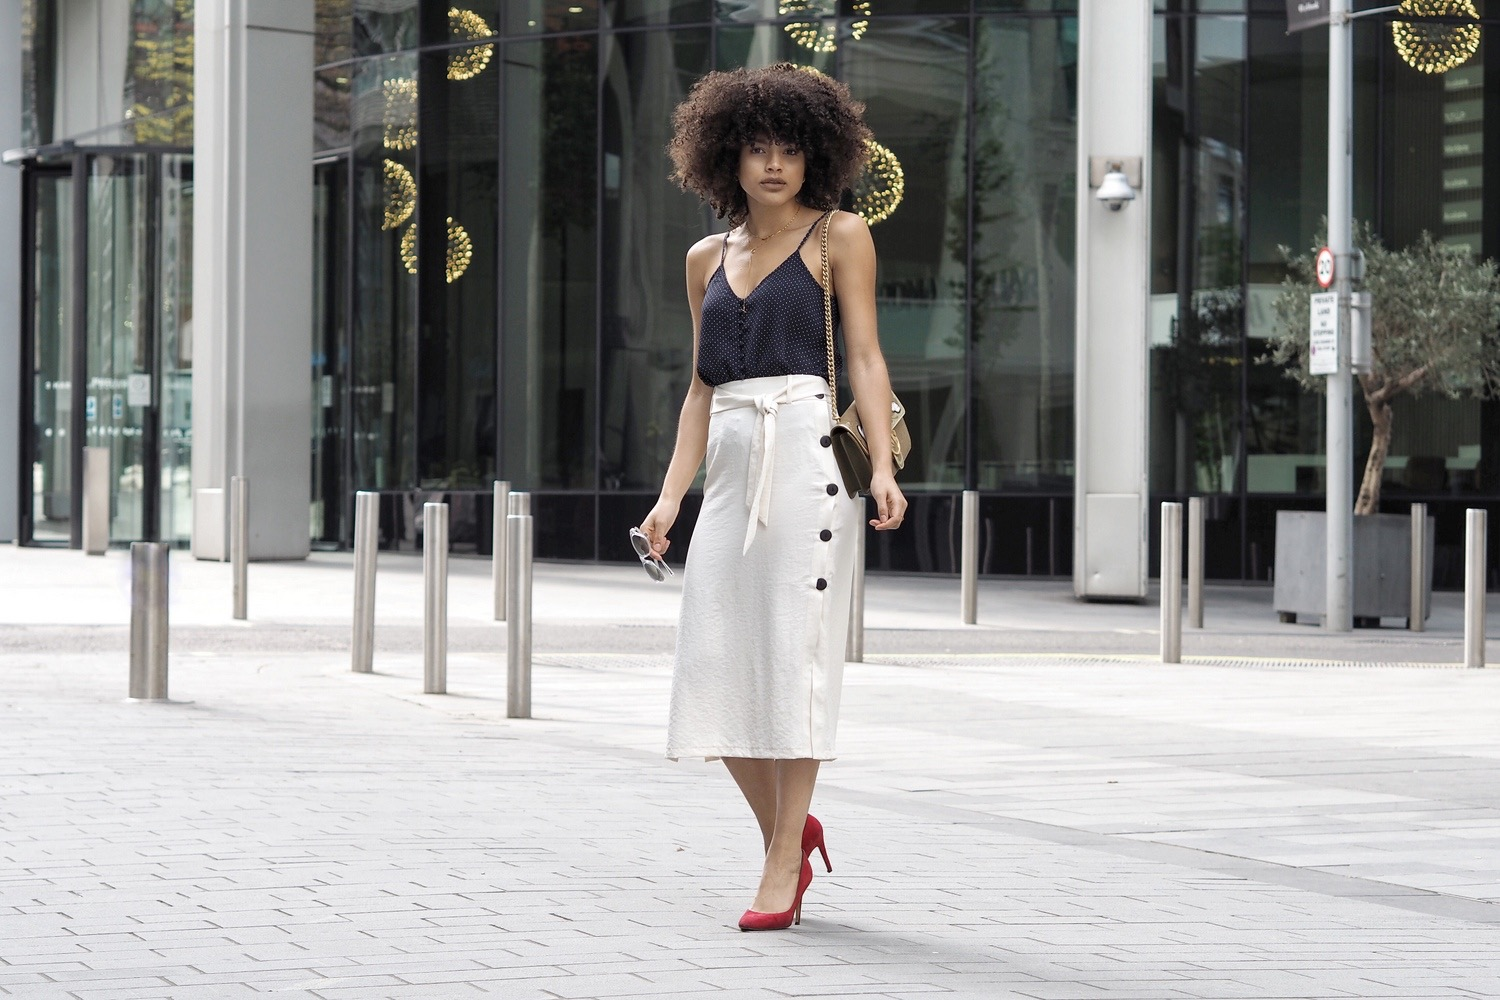 Topshop white midi skirt style blogger outfit